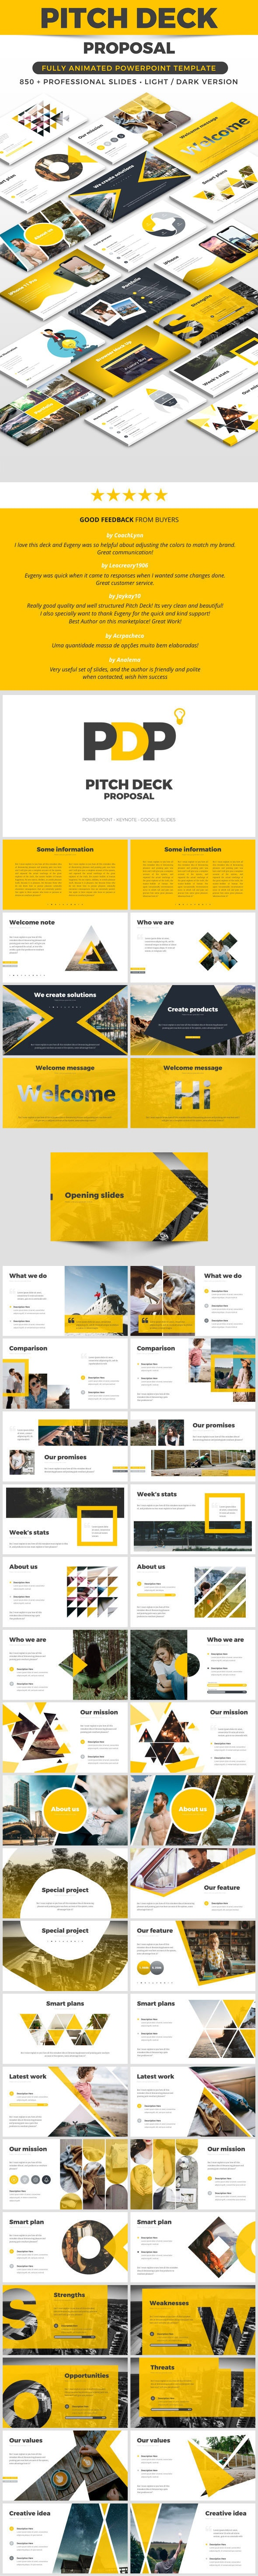 Pitch Deck Proposal - Pitch Deck PowerPoint Templates